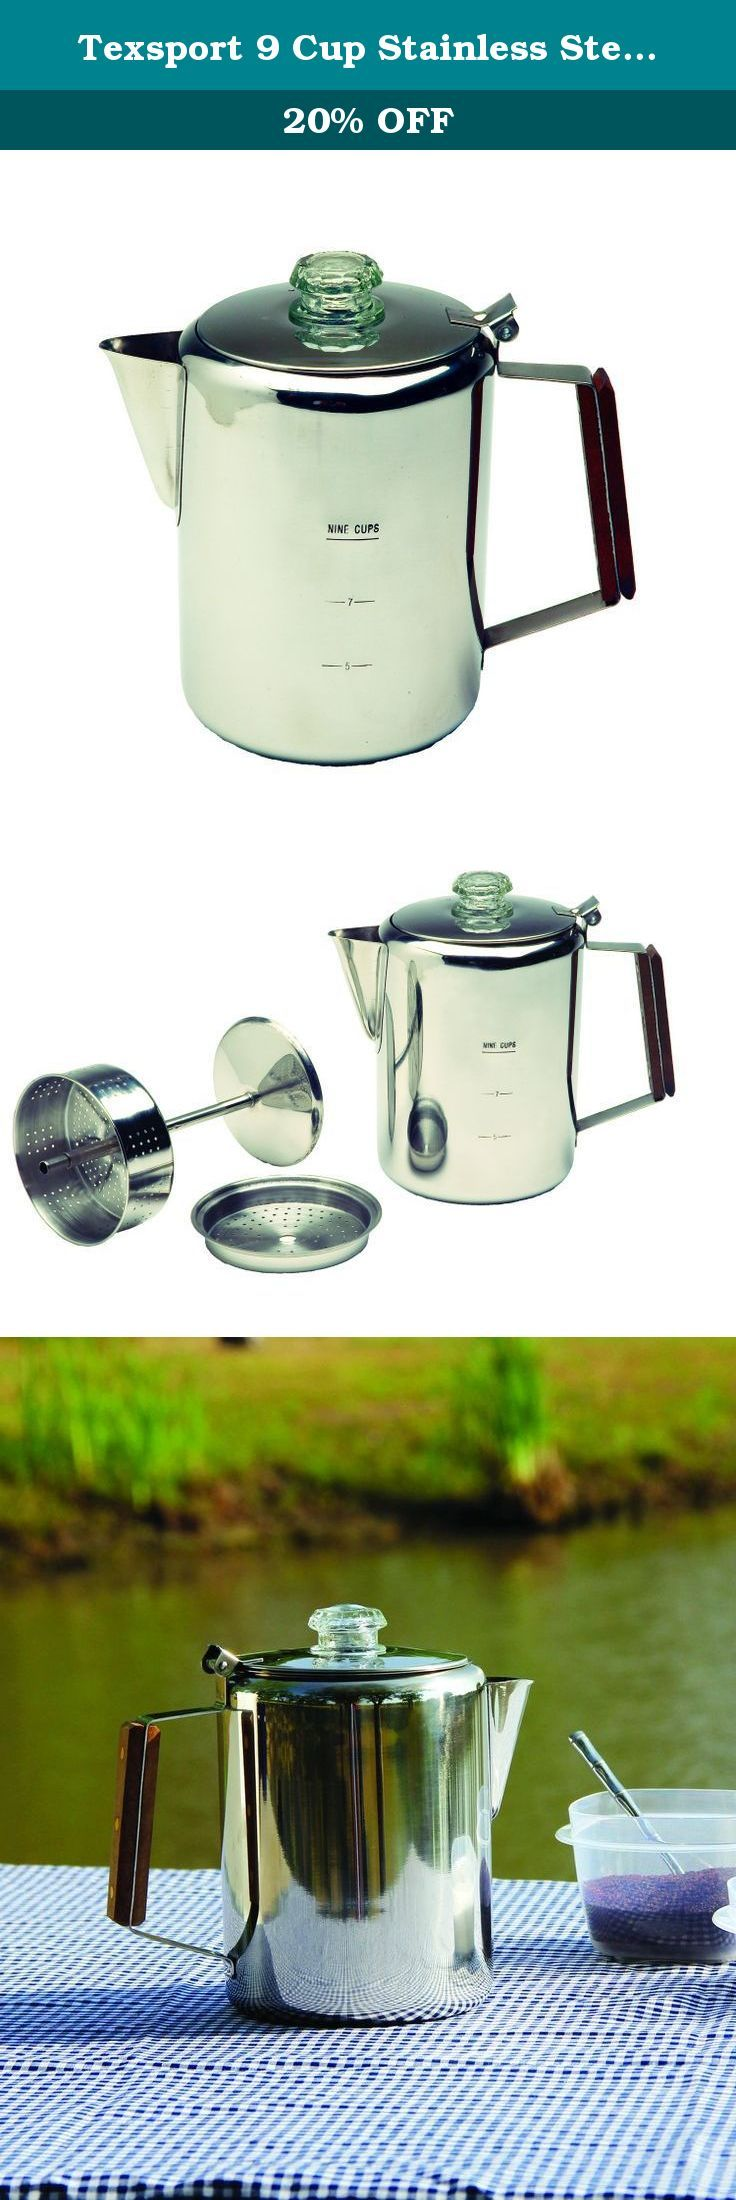 Texsport 9 Cup Stainless Steel Percolator Coffee Maker for Outdoor Camping. Texsport Percolater, Stainless Steel, 9 Cup 13215TEX.